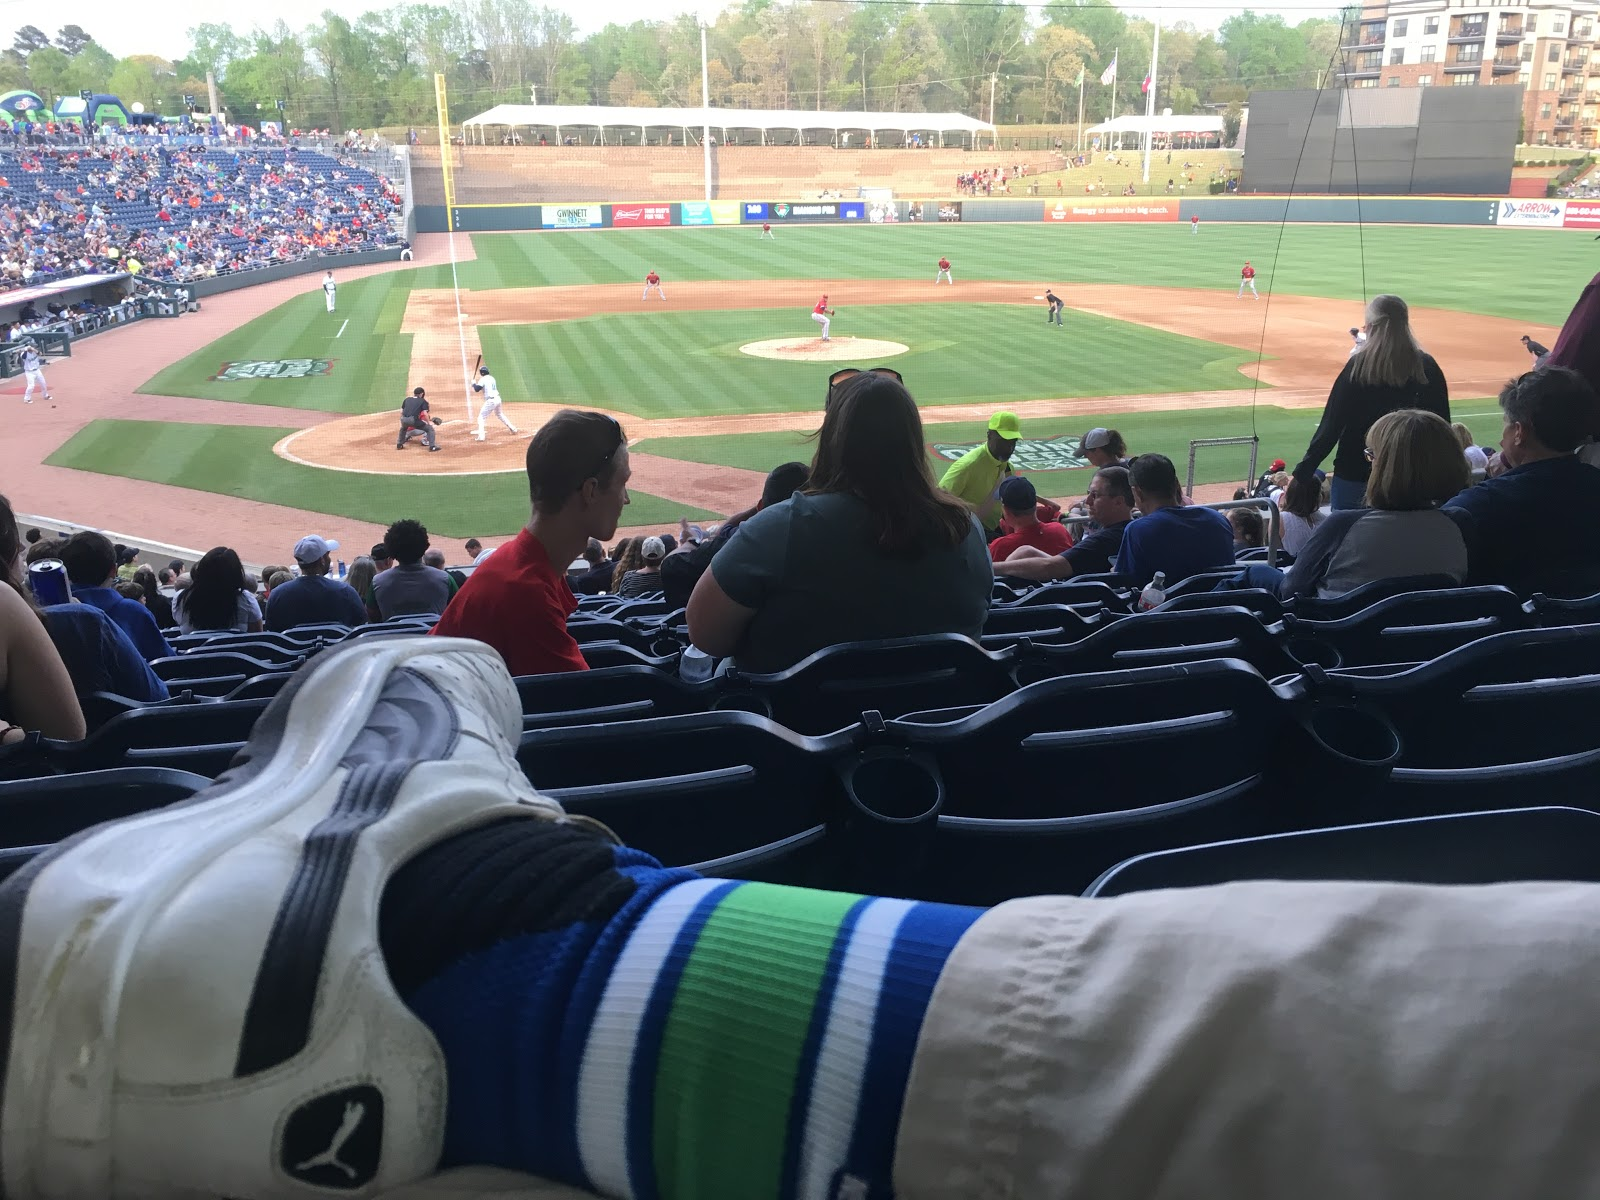 b632b210 Journeyed out to Buford this afternoon for my first Gwinnett Stripers game.